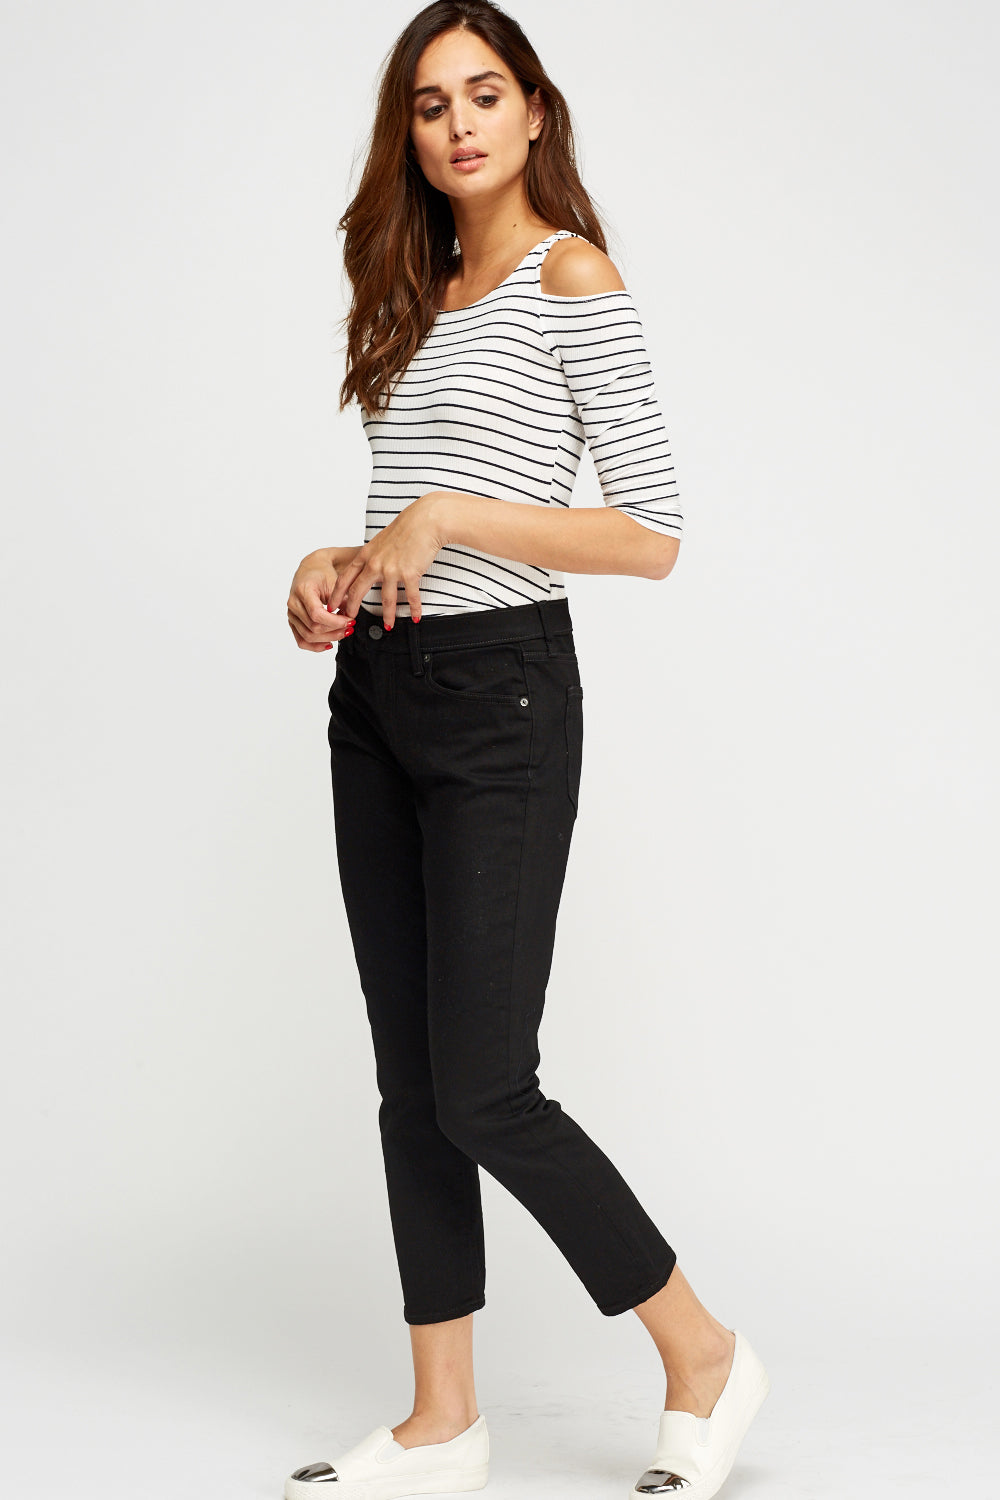 Anastasia Cropped Black Jeans - Woven Trends